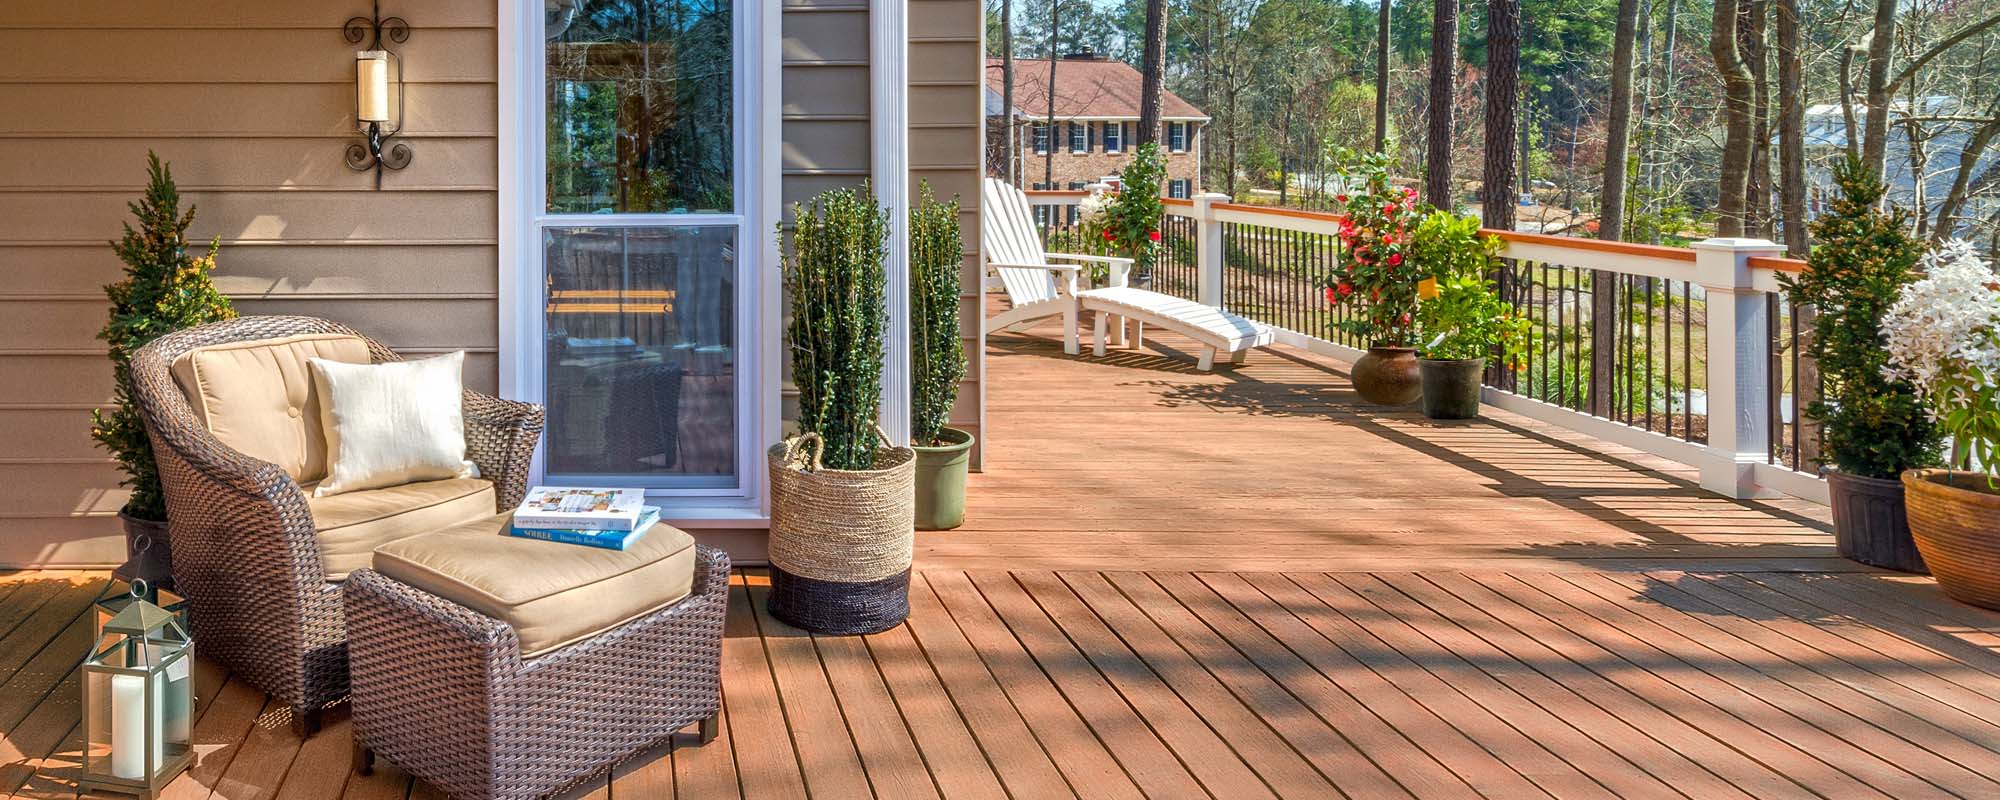 deck cost New Jerset what does a deck cost to build New Jersey